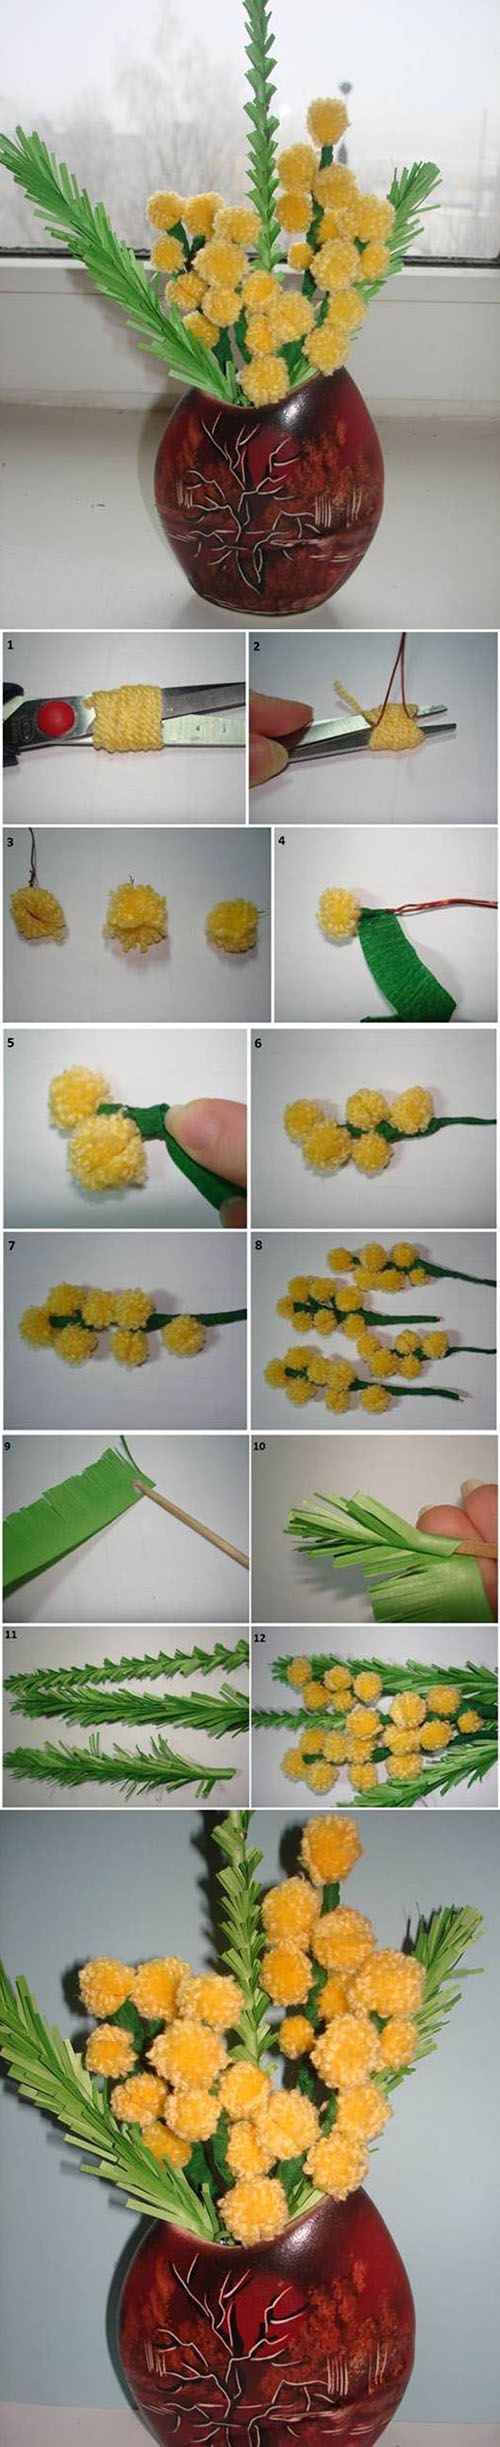 Diy Beautiful Flower | DIY & Crafts Tutorials: